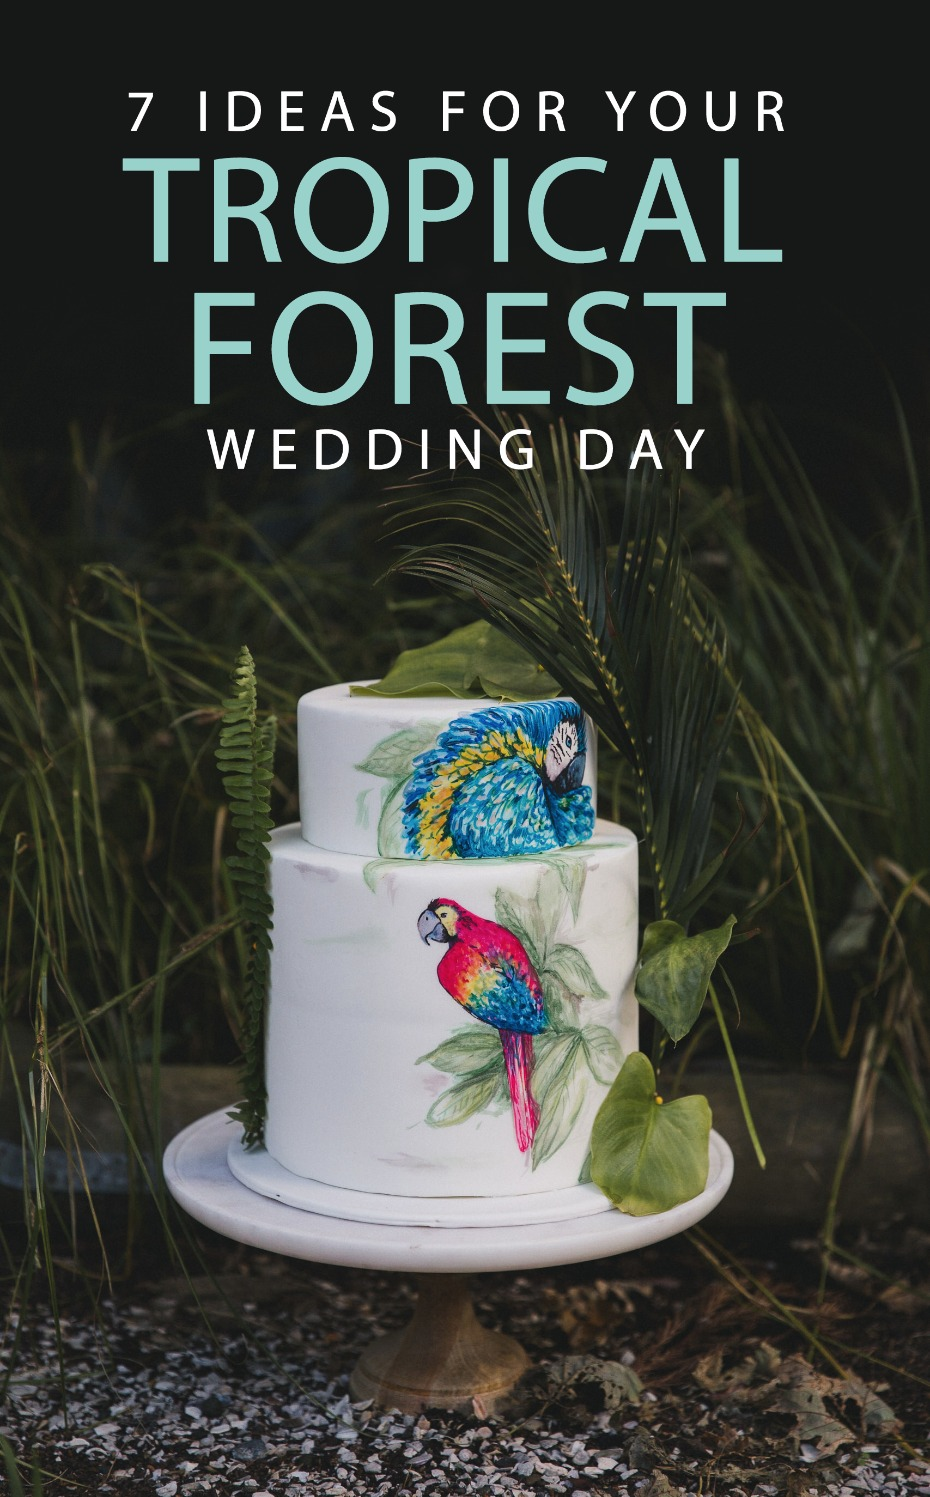 7 ideas for your tropical forest wedding